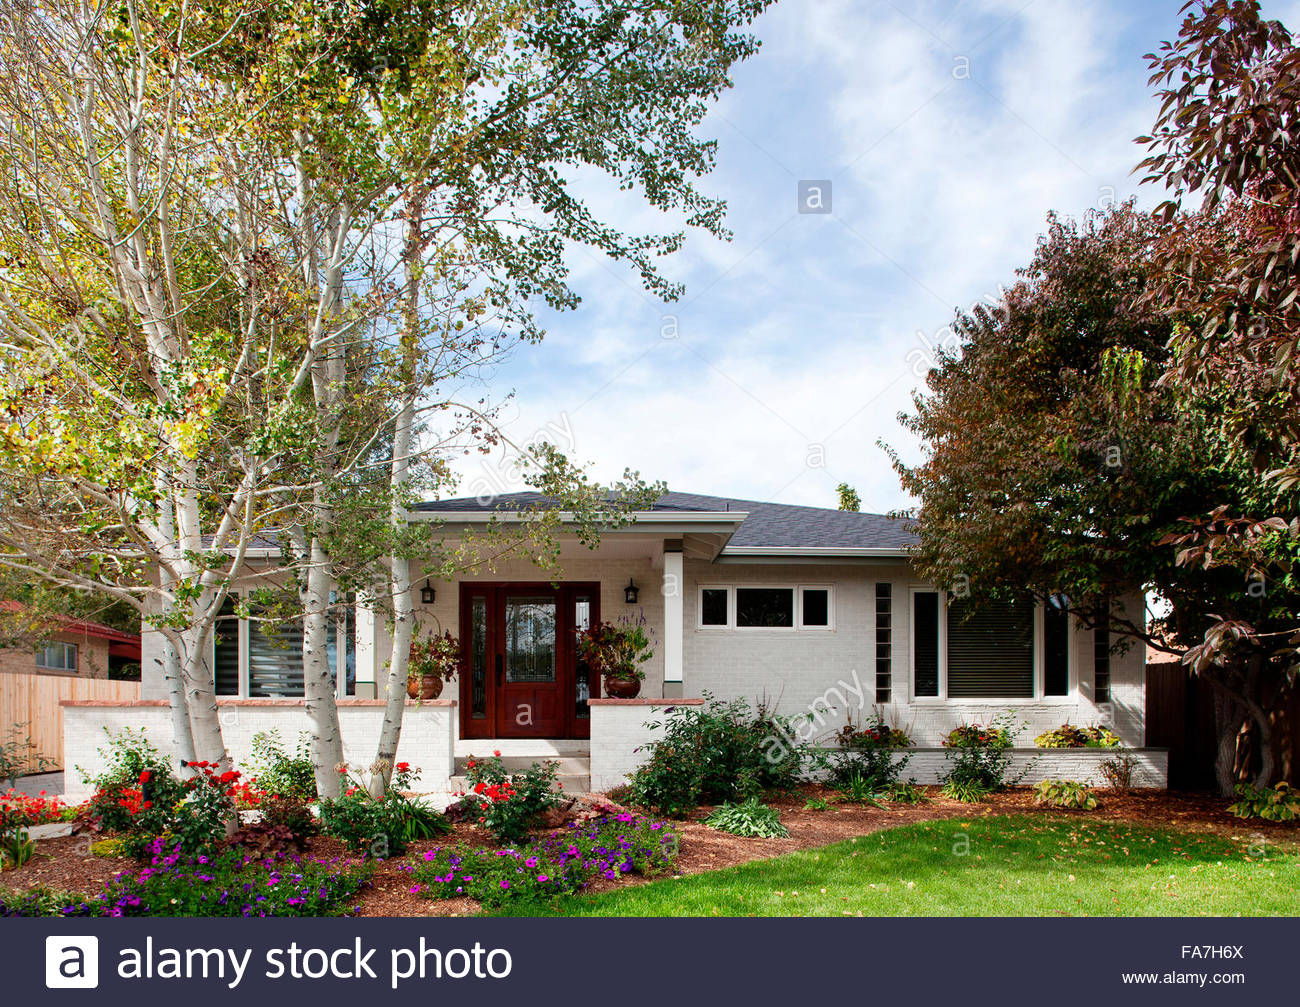 exterior of white brick one story house with aspen trees in